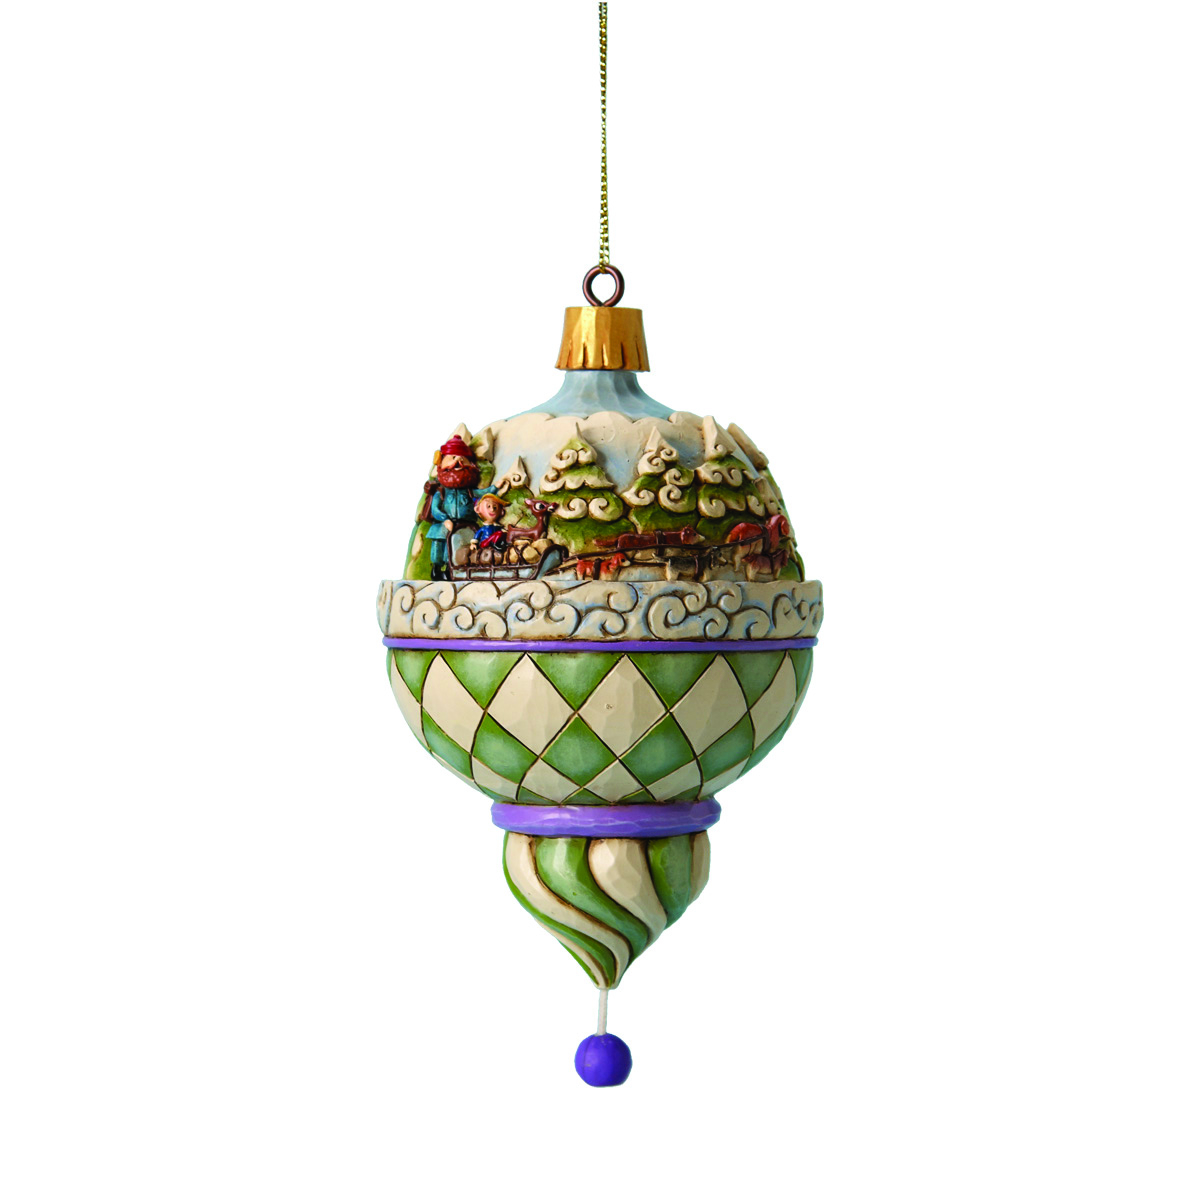 OCT112015 - RUDOLPH TRADITIONS ICE SCENE ORNAMENT - Previews World